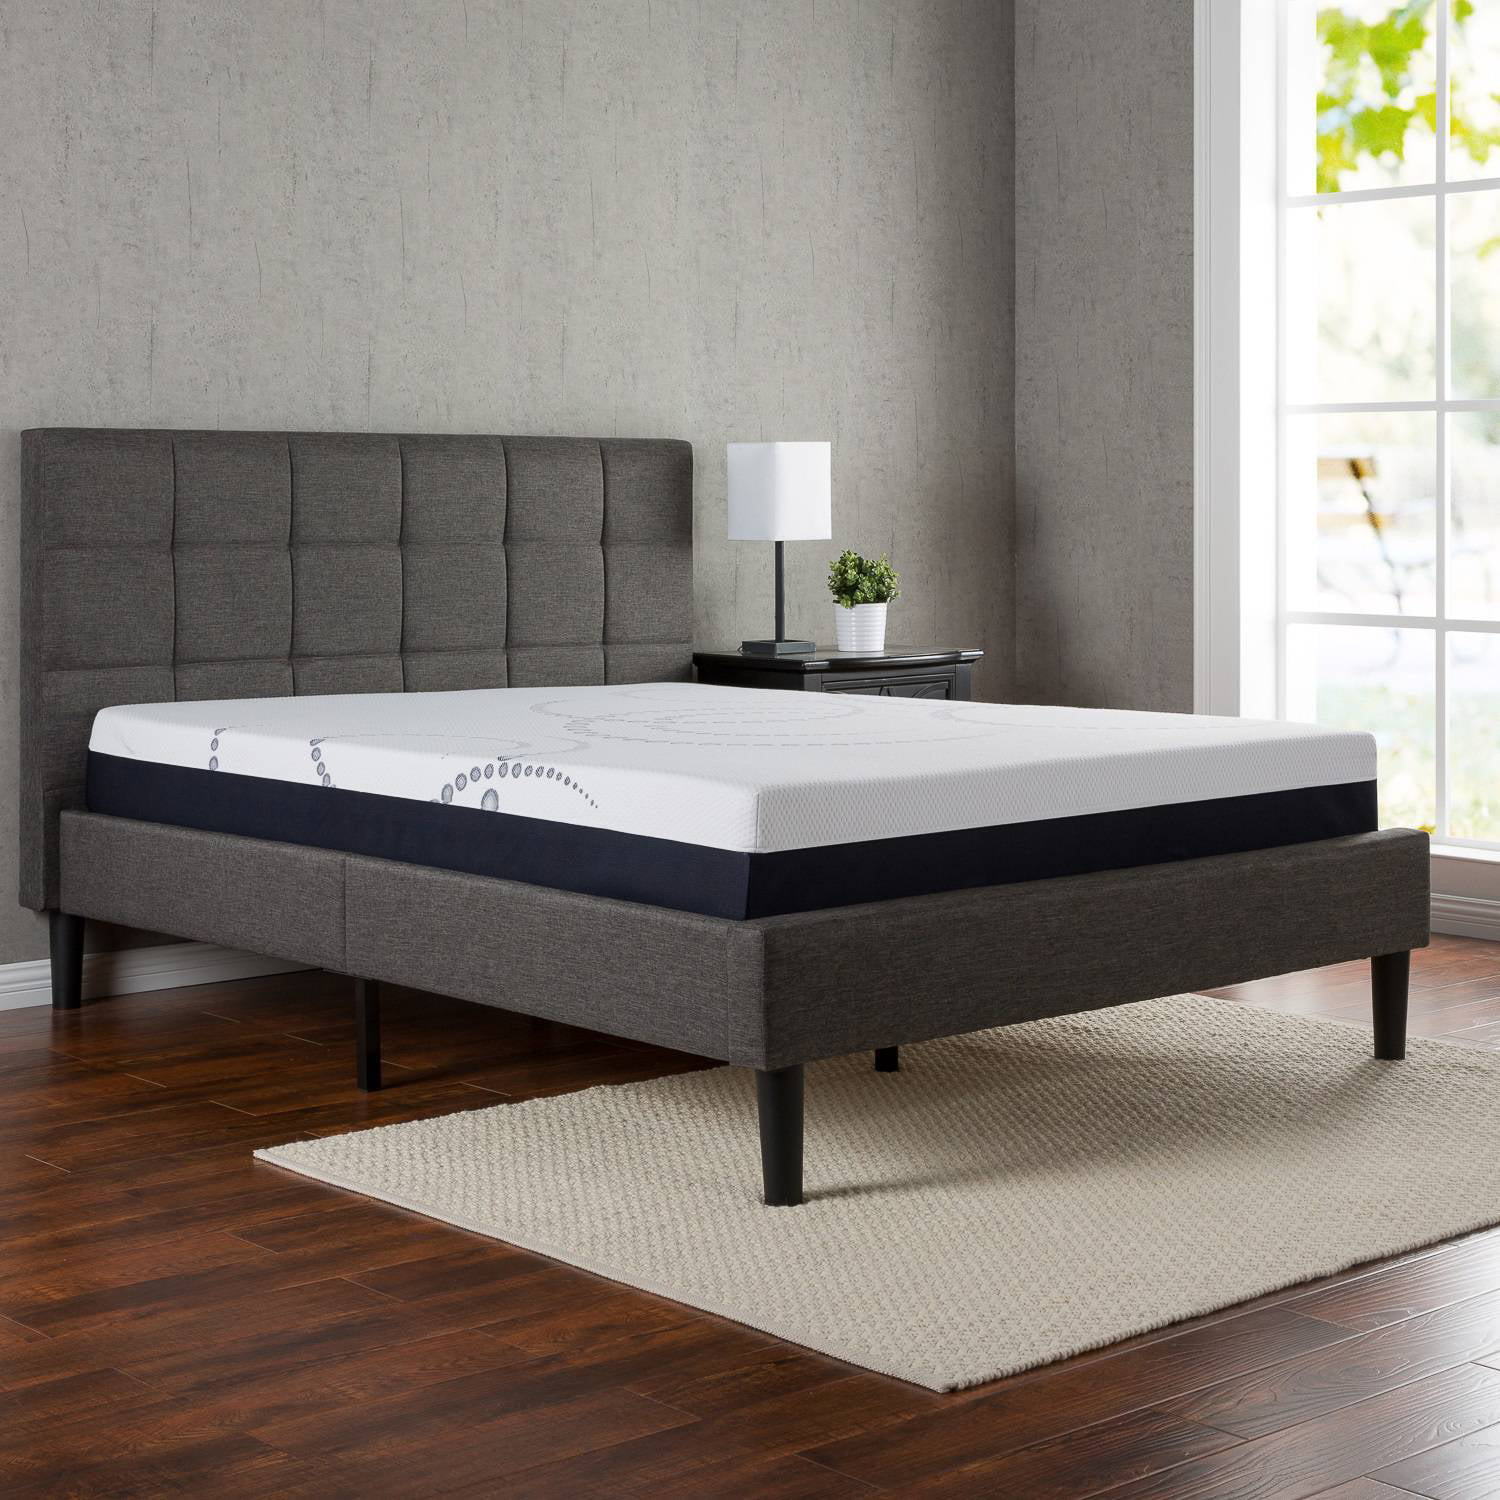 Bed headboard upholstered - Zinus Upholstered Square Stitched Platform Bed With Headboard And Wooden Slats Walmart Com